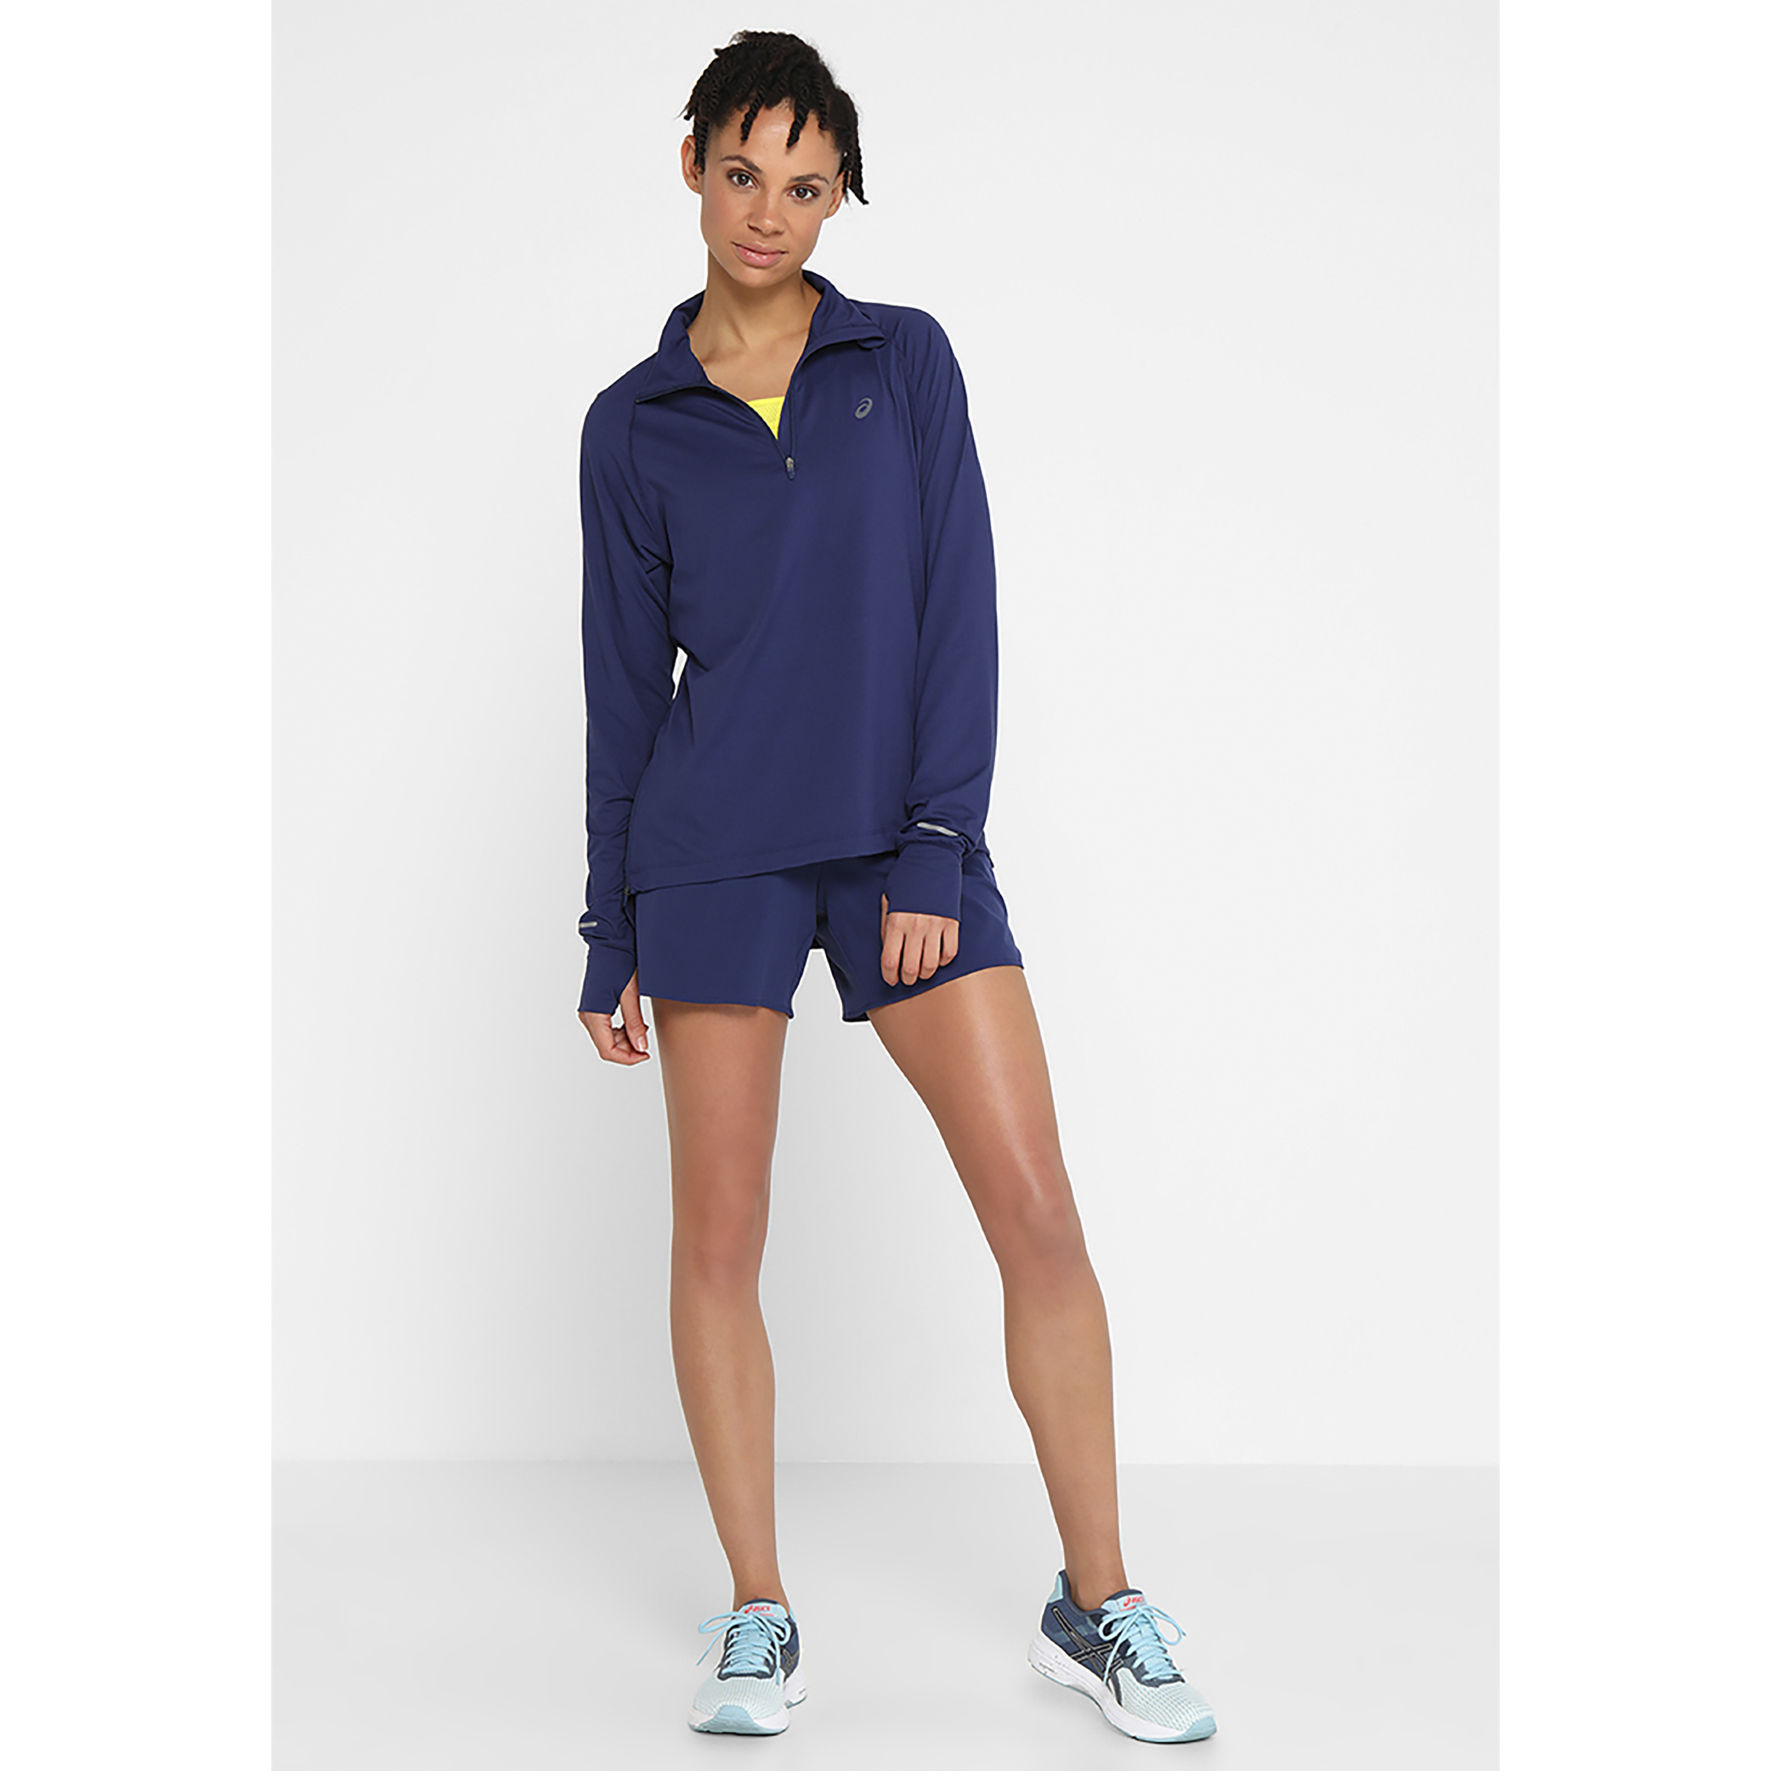 Asics Lady Thermopolis LS 1/2 Zip in Blau